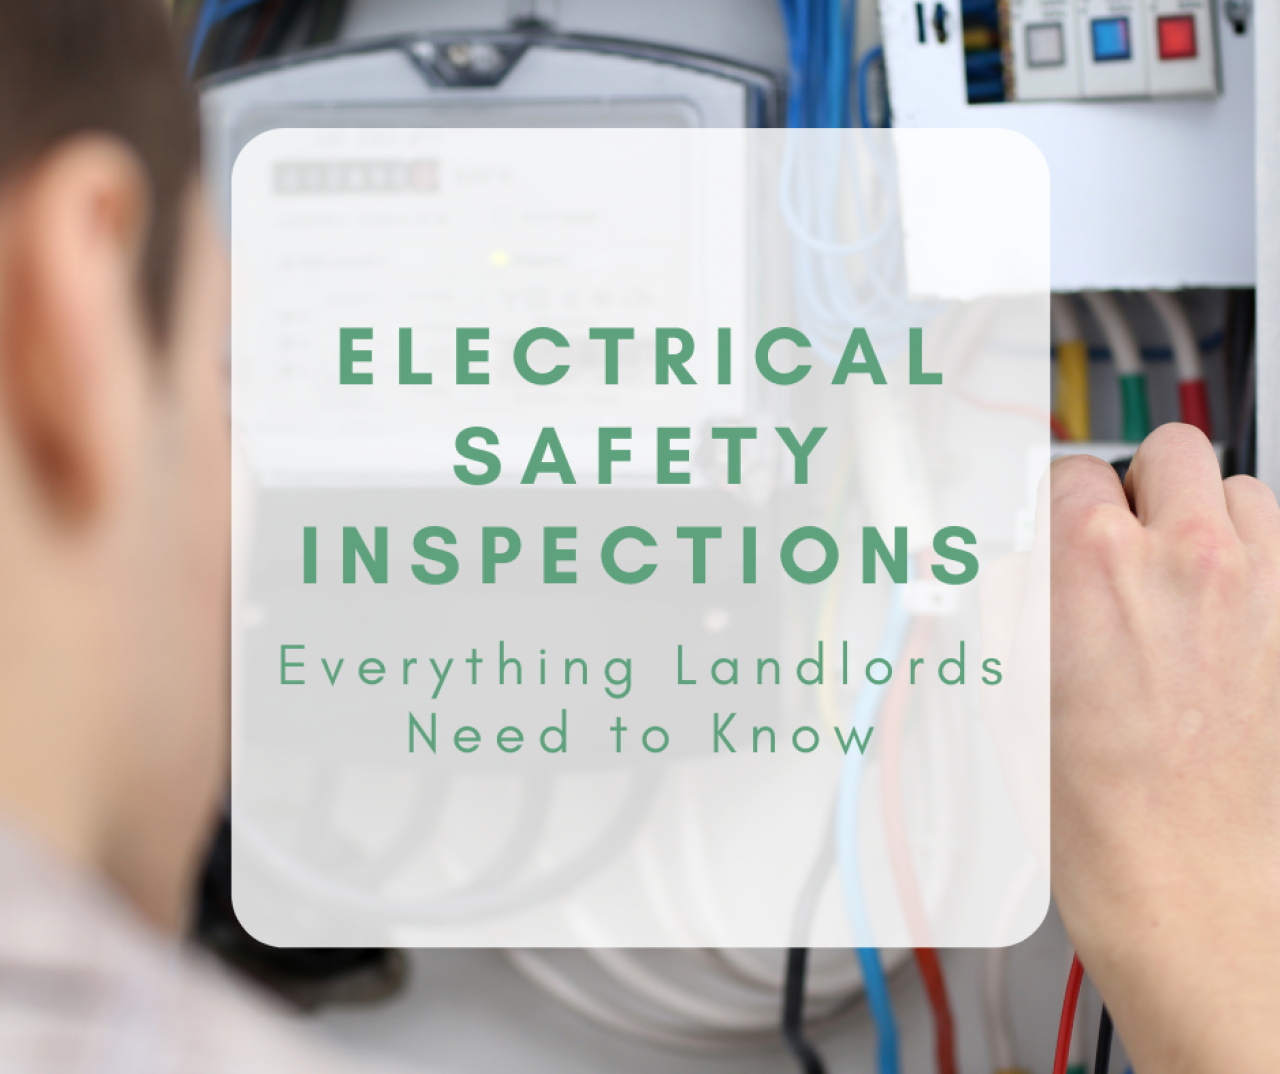 >Electrical safety EICR inspections for landlords